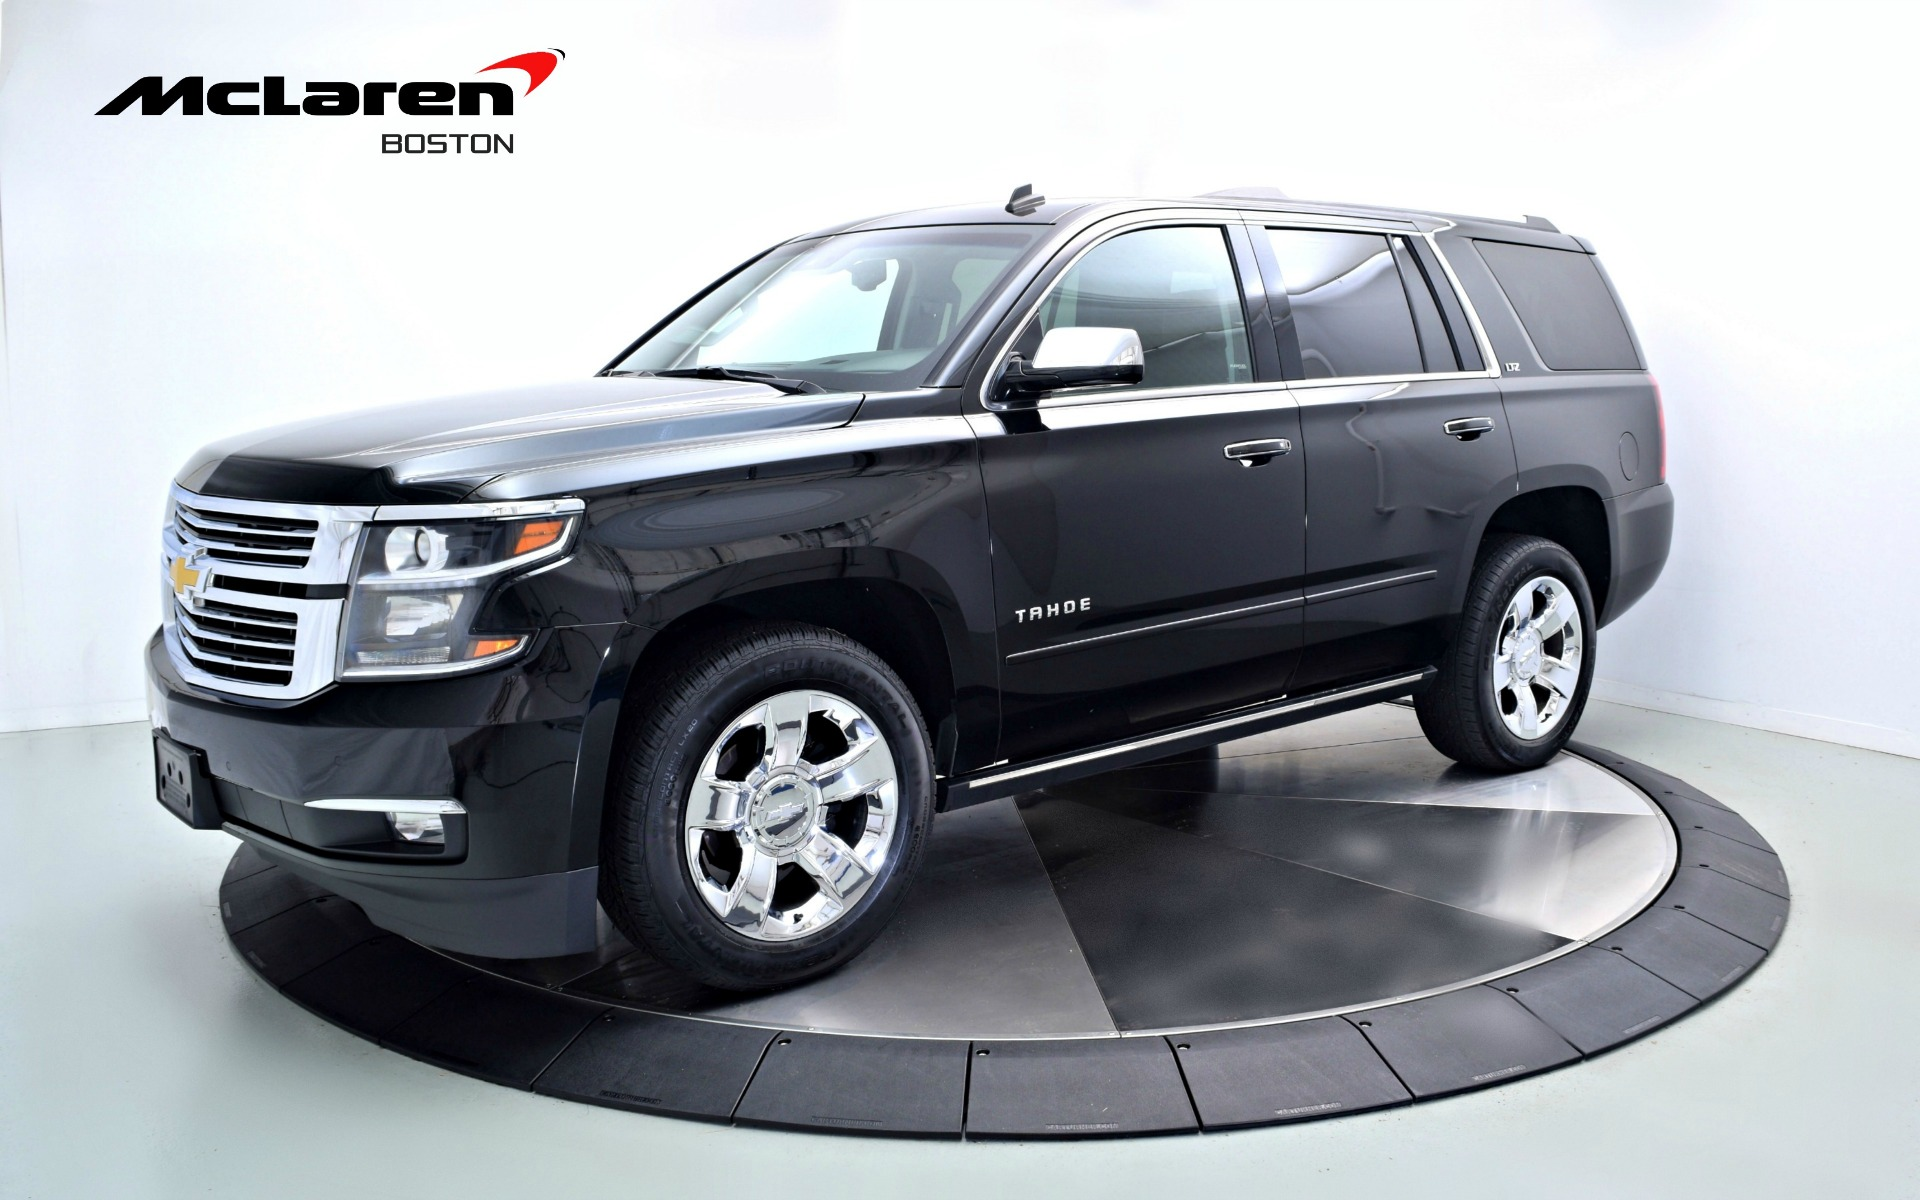 2015 Chevrolet Tahoe Ltz For Sale In Norwell Ma 22659 Mclaren Boston Chevy Used